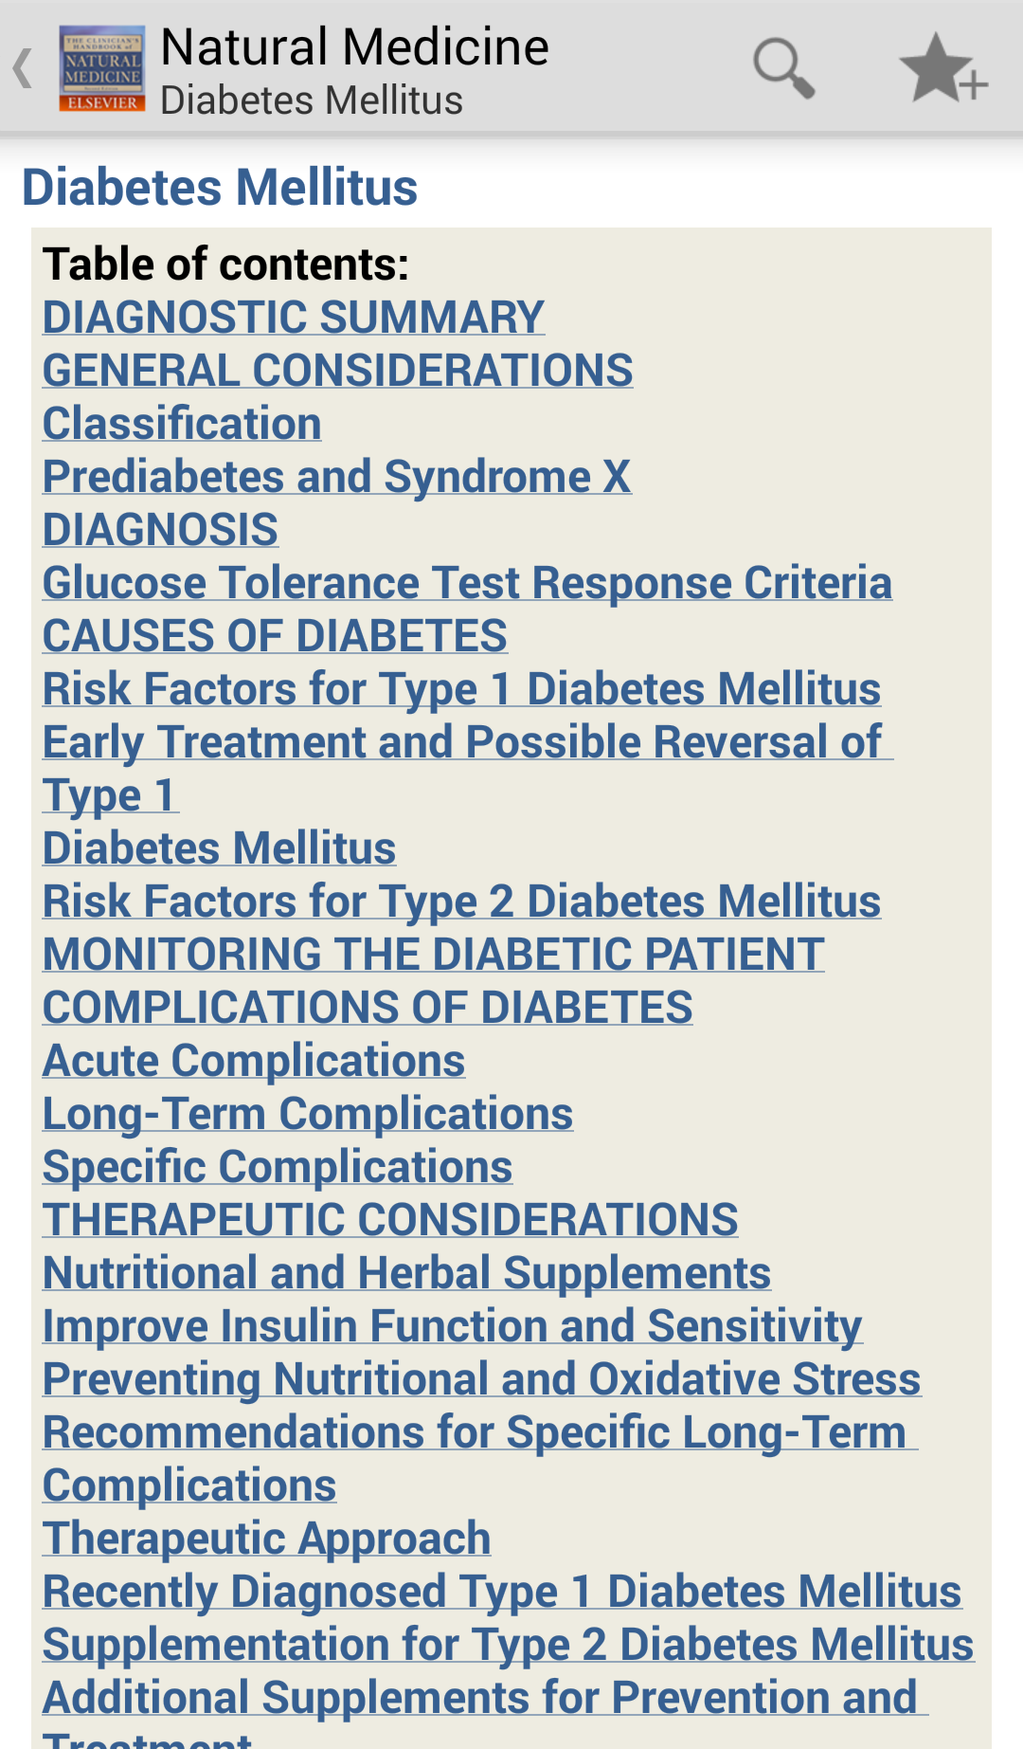 The Clinician's Handbook of Natural Medicine Screenshot 1